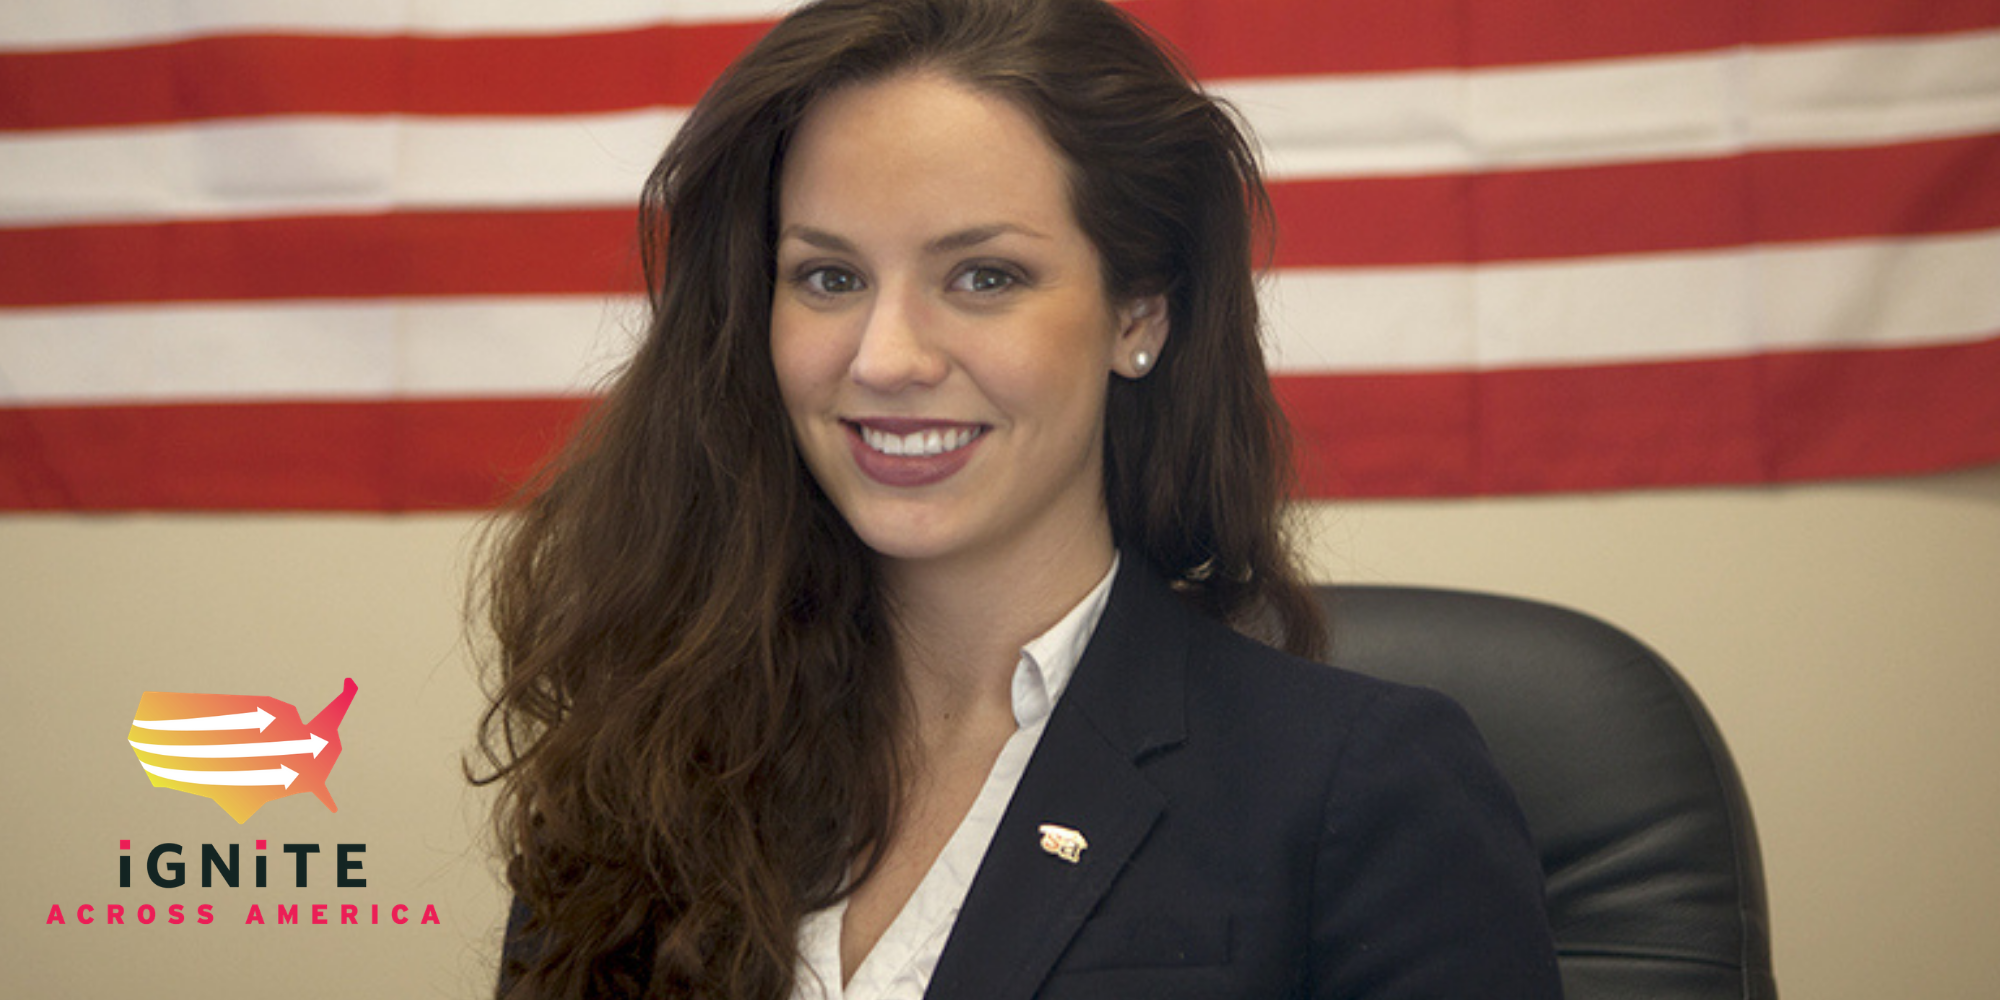 From Miss. Rhode Island to the National Guard and Beyond: Allie's Story